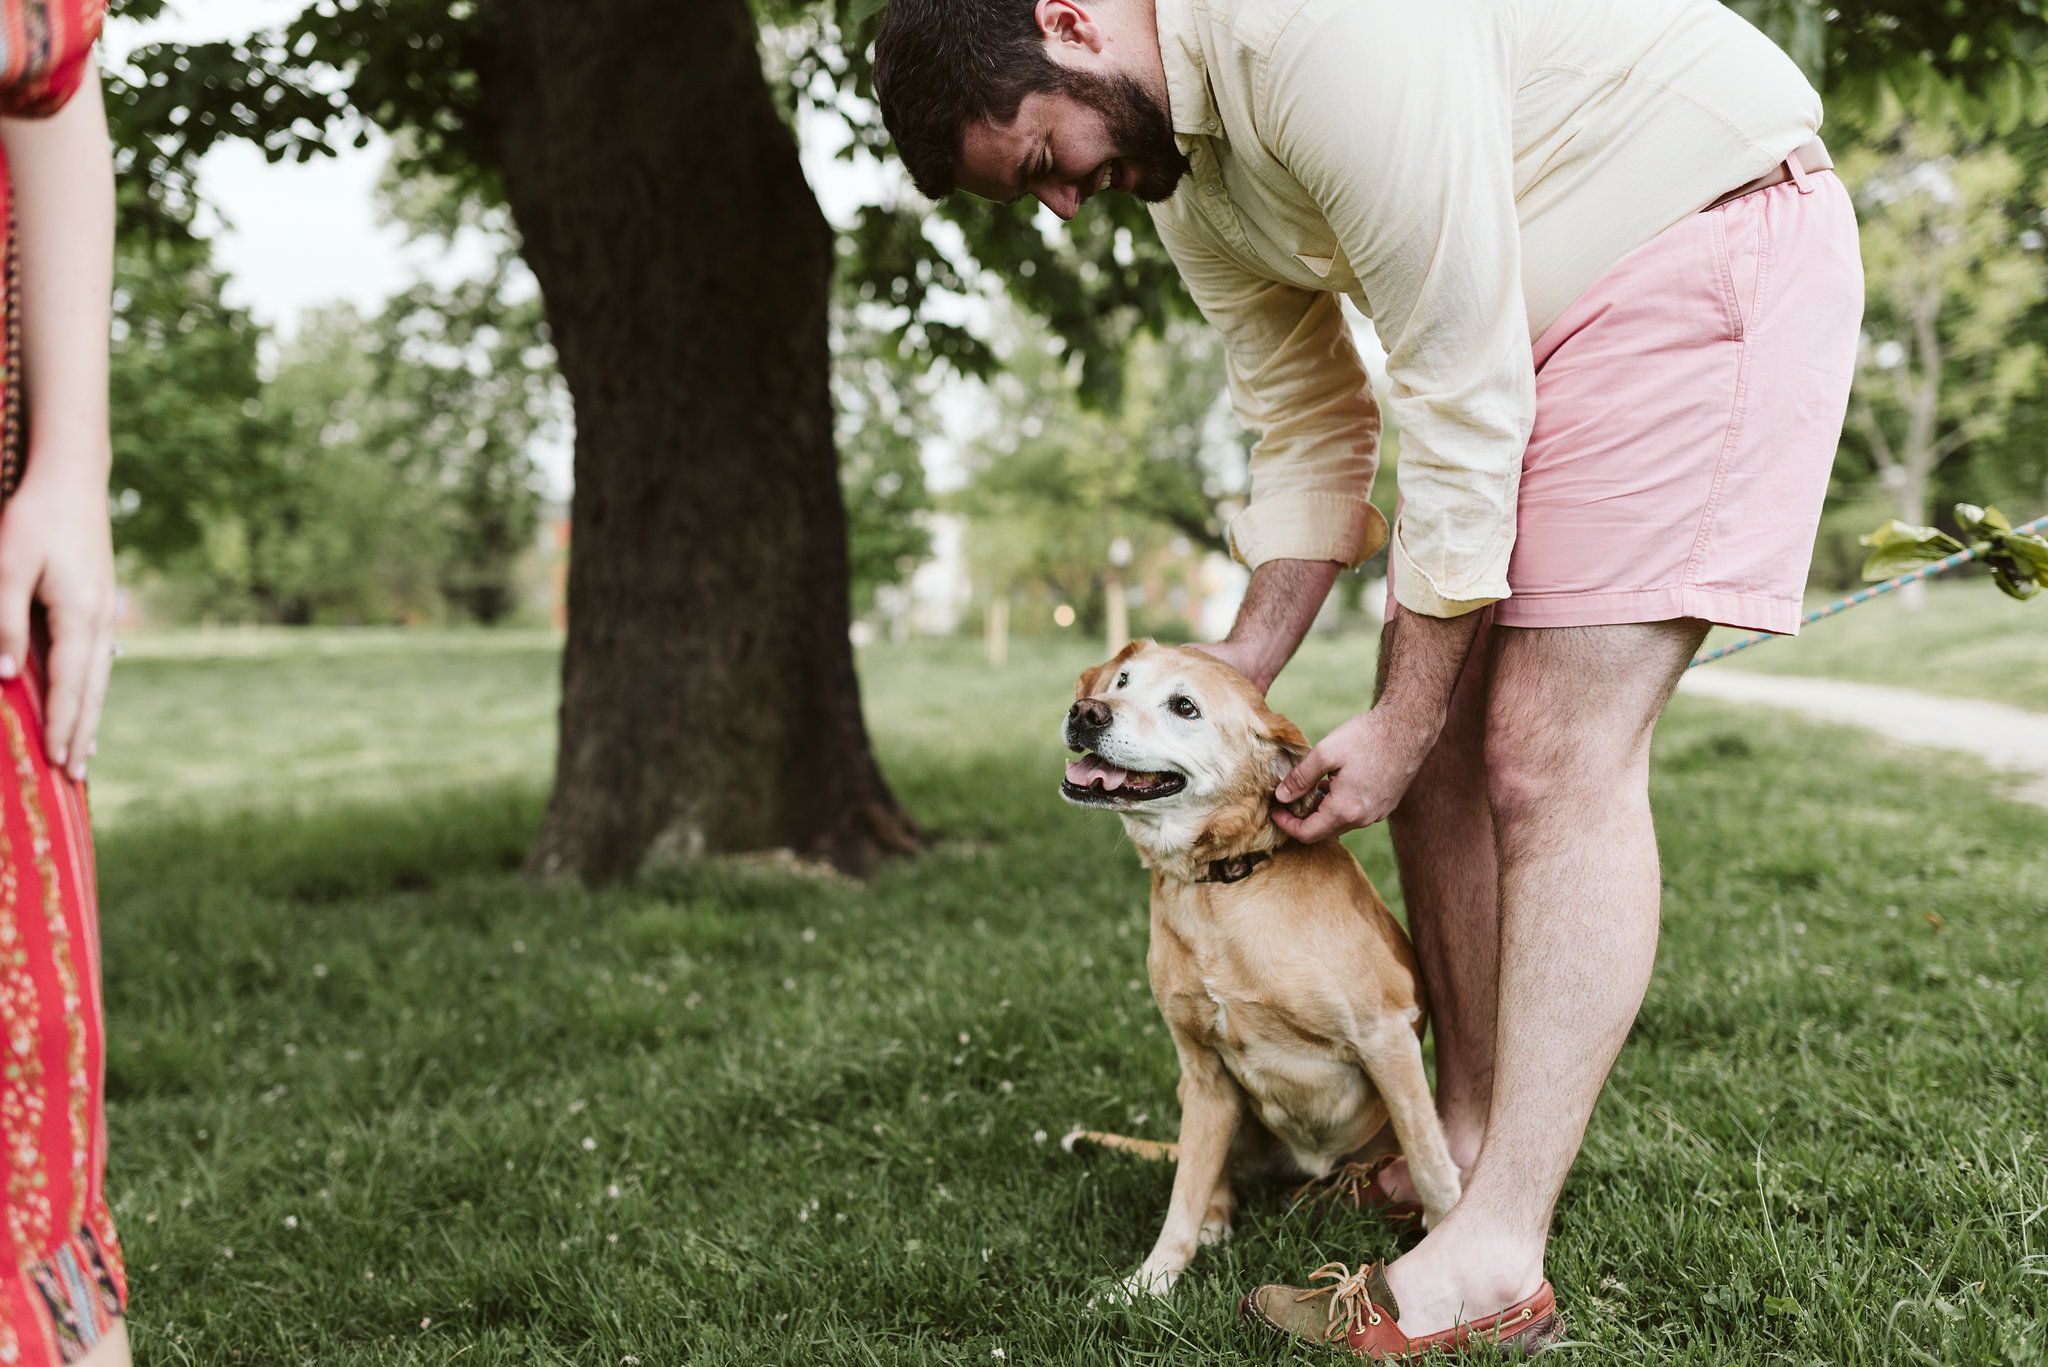 Engagement Photos, Patterson Park, Baltimore, Maryland Wedding Photographer, Casual, Fun, Nature, Bride and Groom with Their Dog, Pets, Springtime